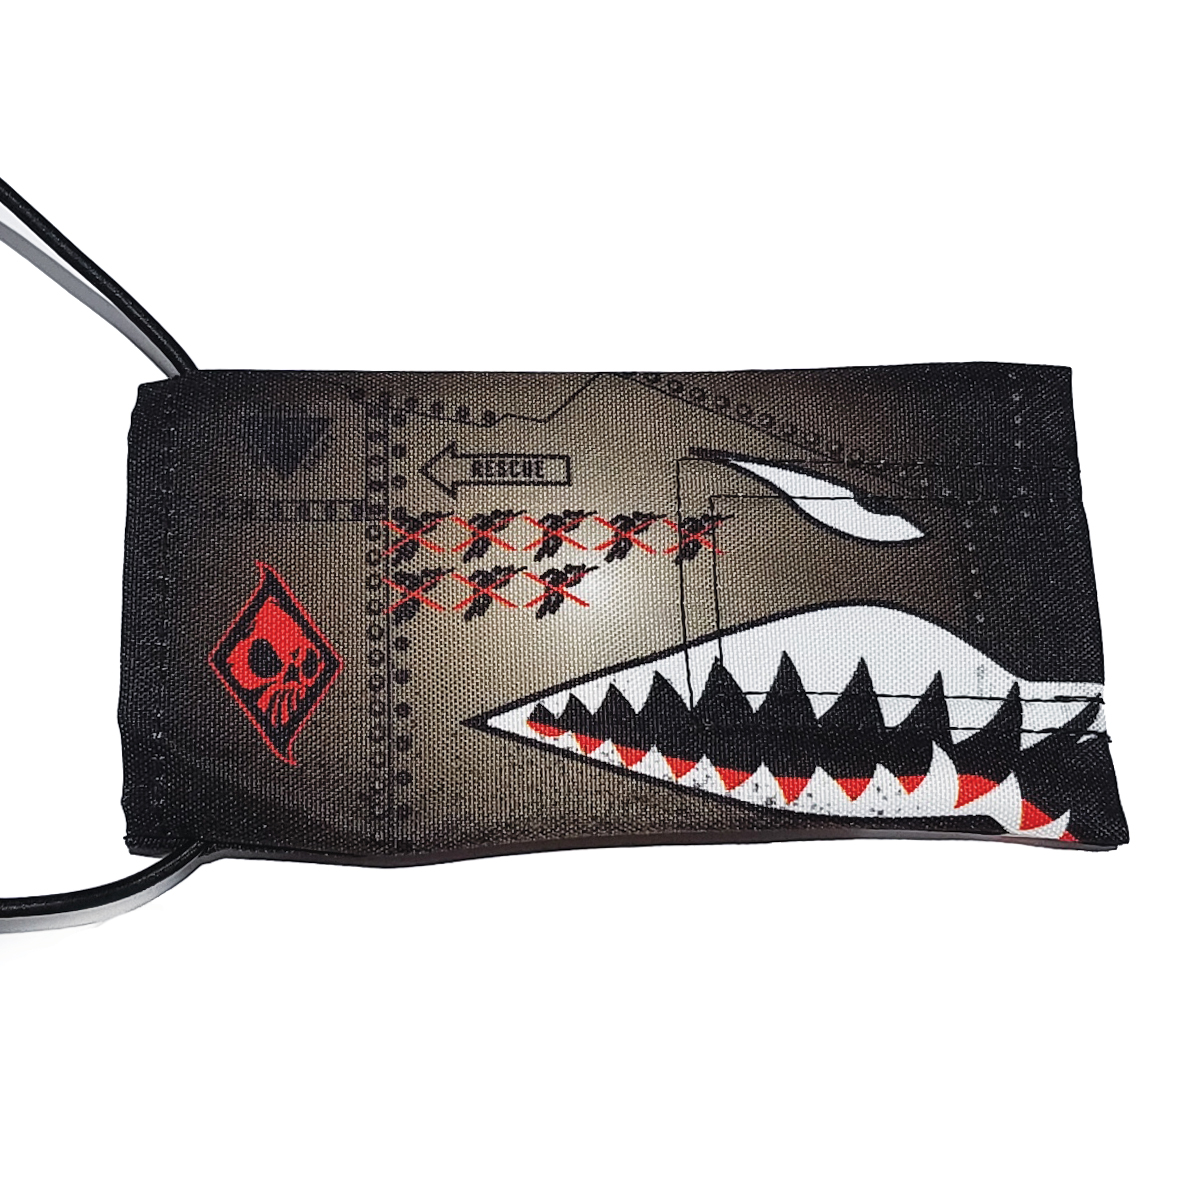 Wicked Sports Paintball Barrel Cover / Sock - Sharktooth - Gray